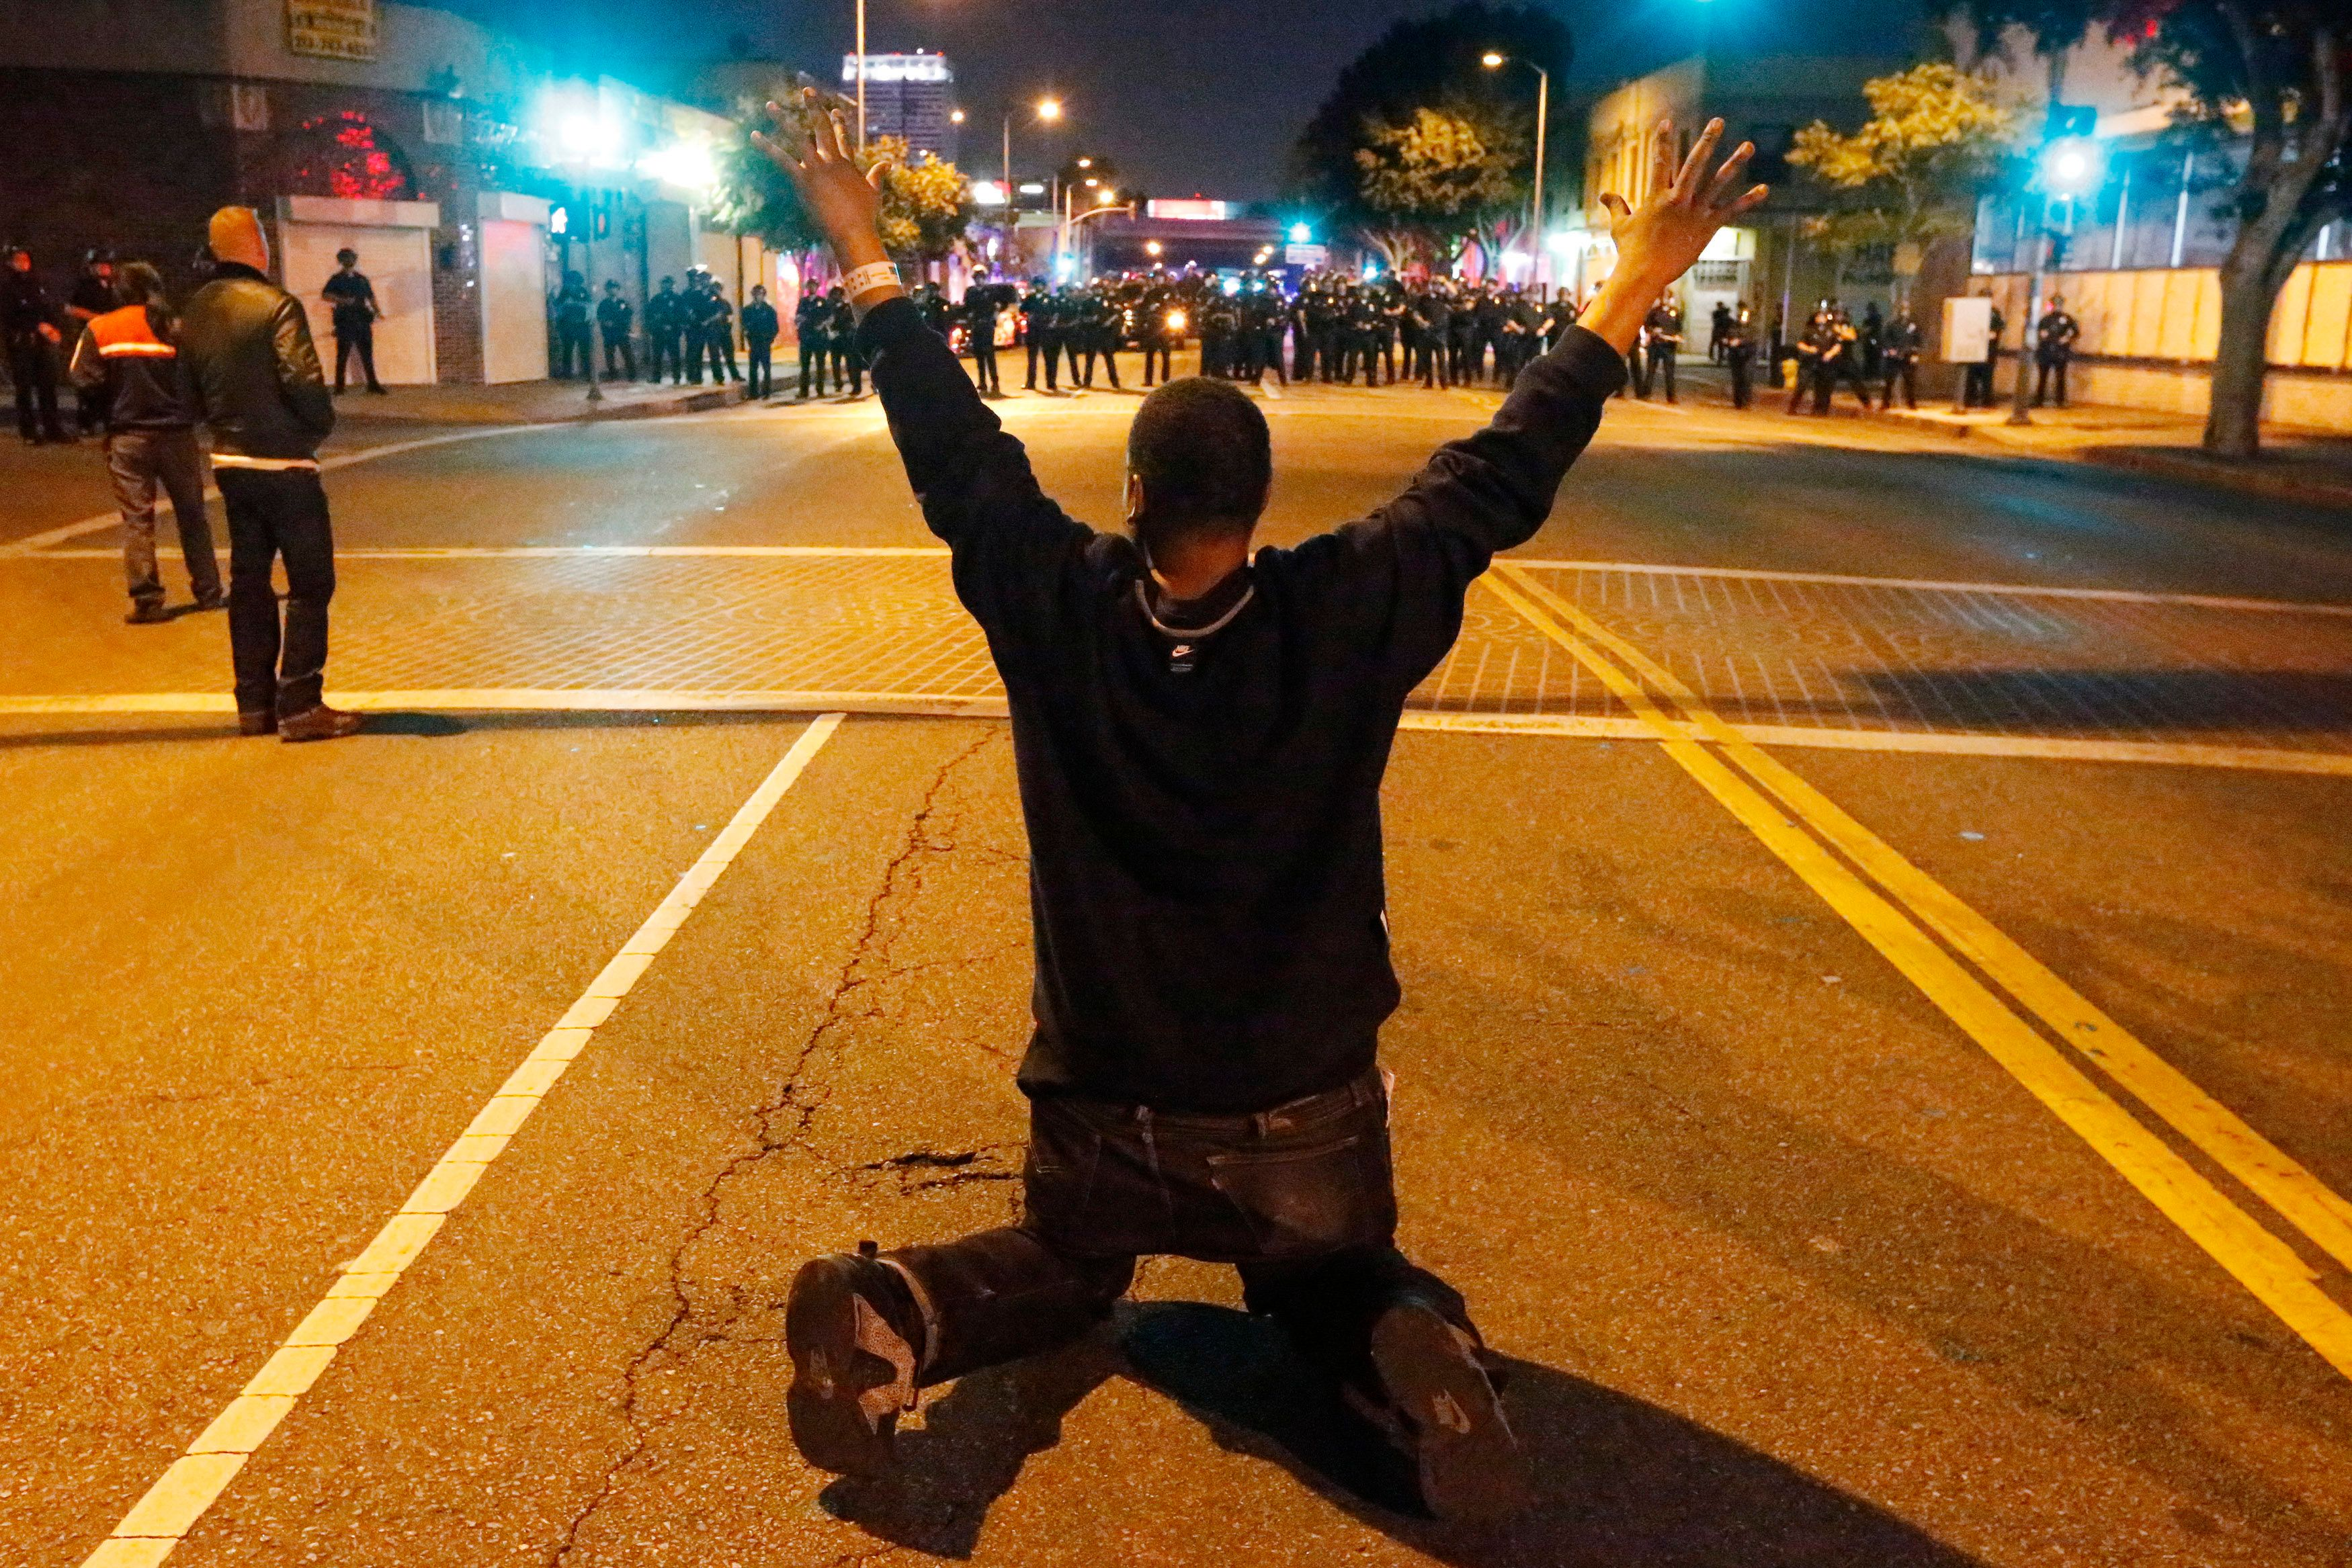 A man kneels in the road in front of a line of police during a demonstration in Los Angeles, California November 24, 2014, following the grand jury decision in the shooting of Michael Brown in Ferguson, Missouri. REUTERS/Lucy Nicholson   (UNITED STATES - Tags: CIVIL UNREST CRIME LAW)